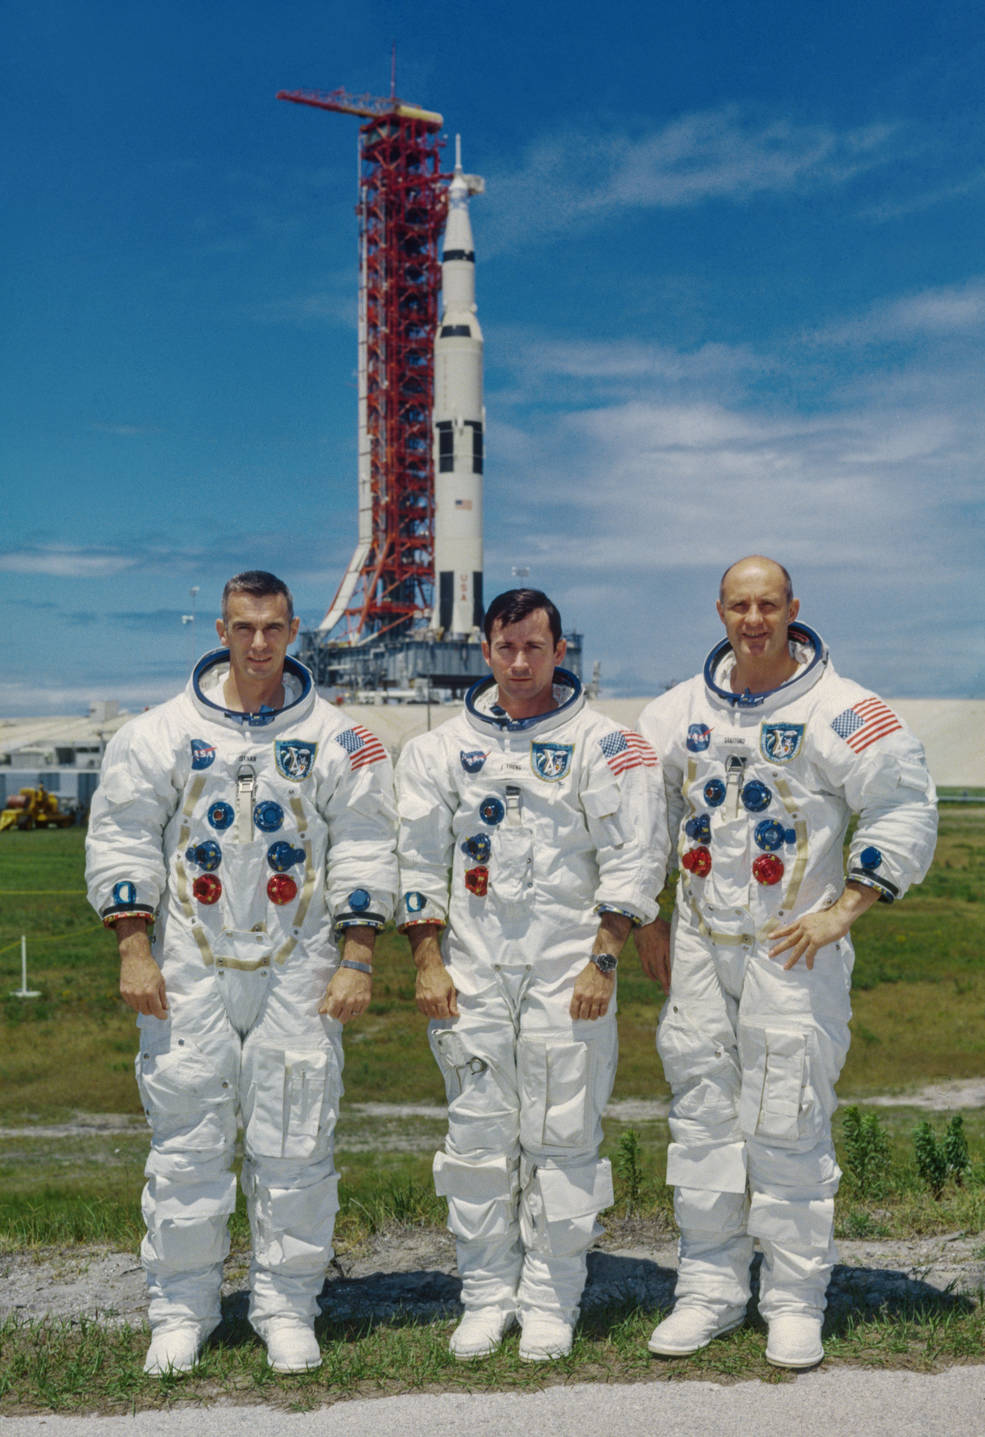 apollo_10_crew_photo